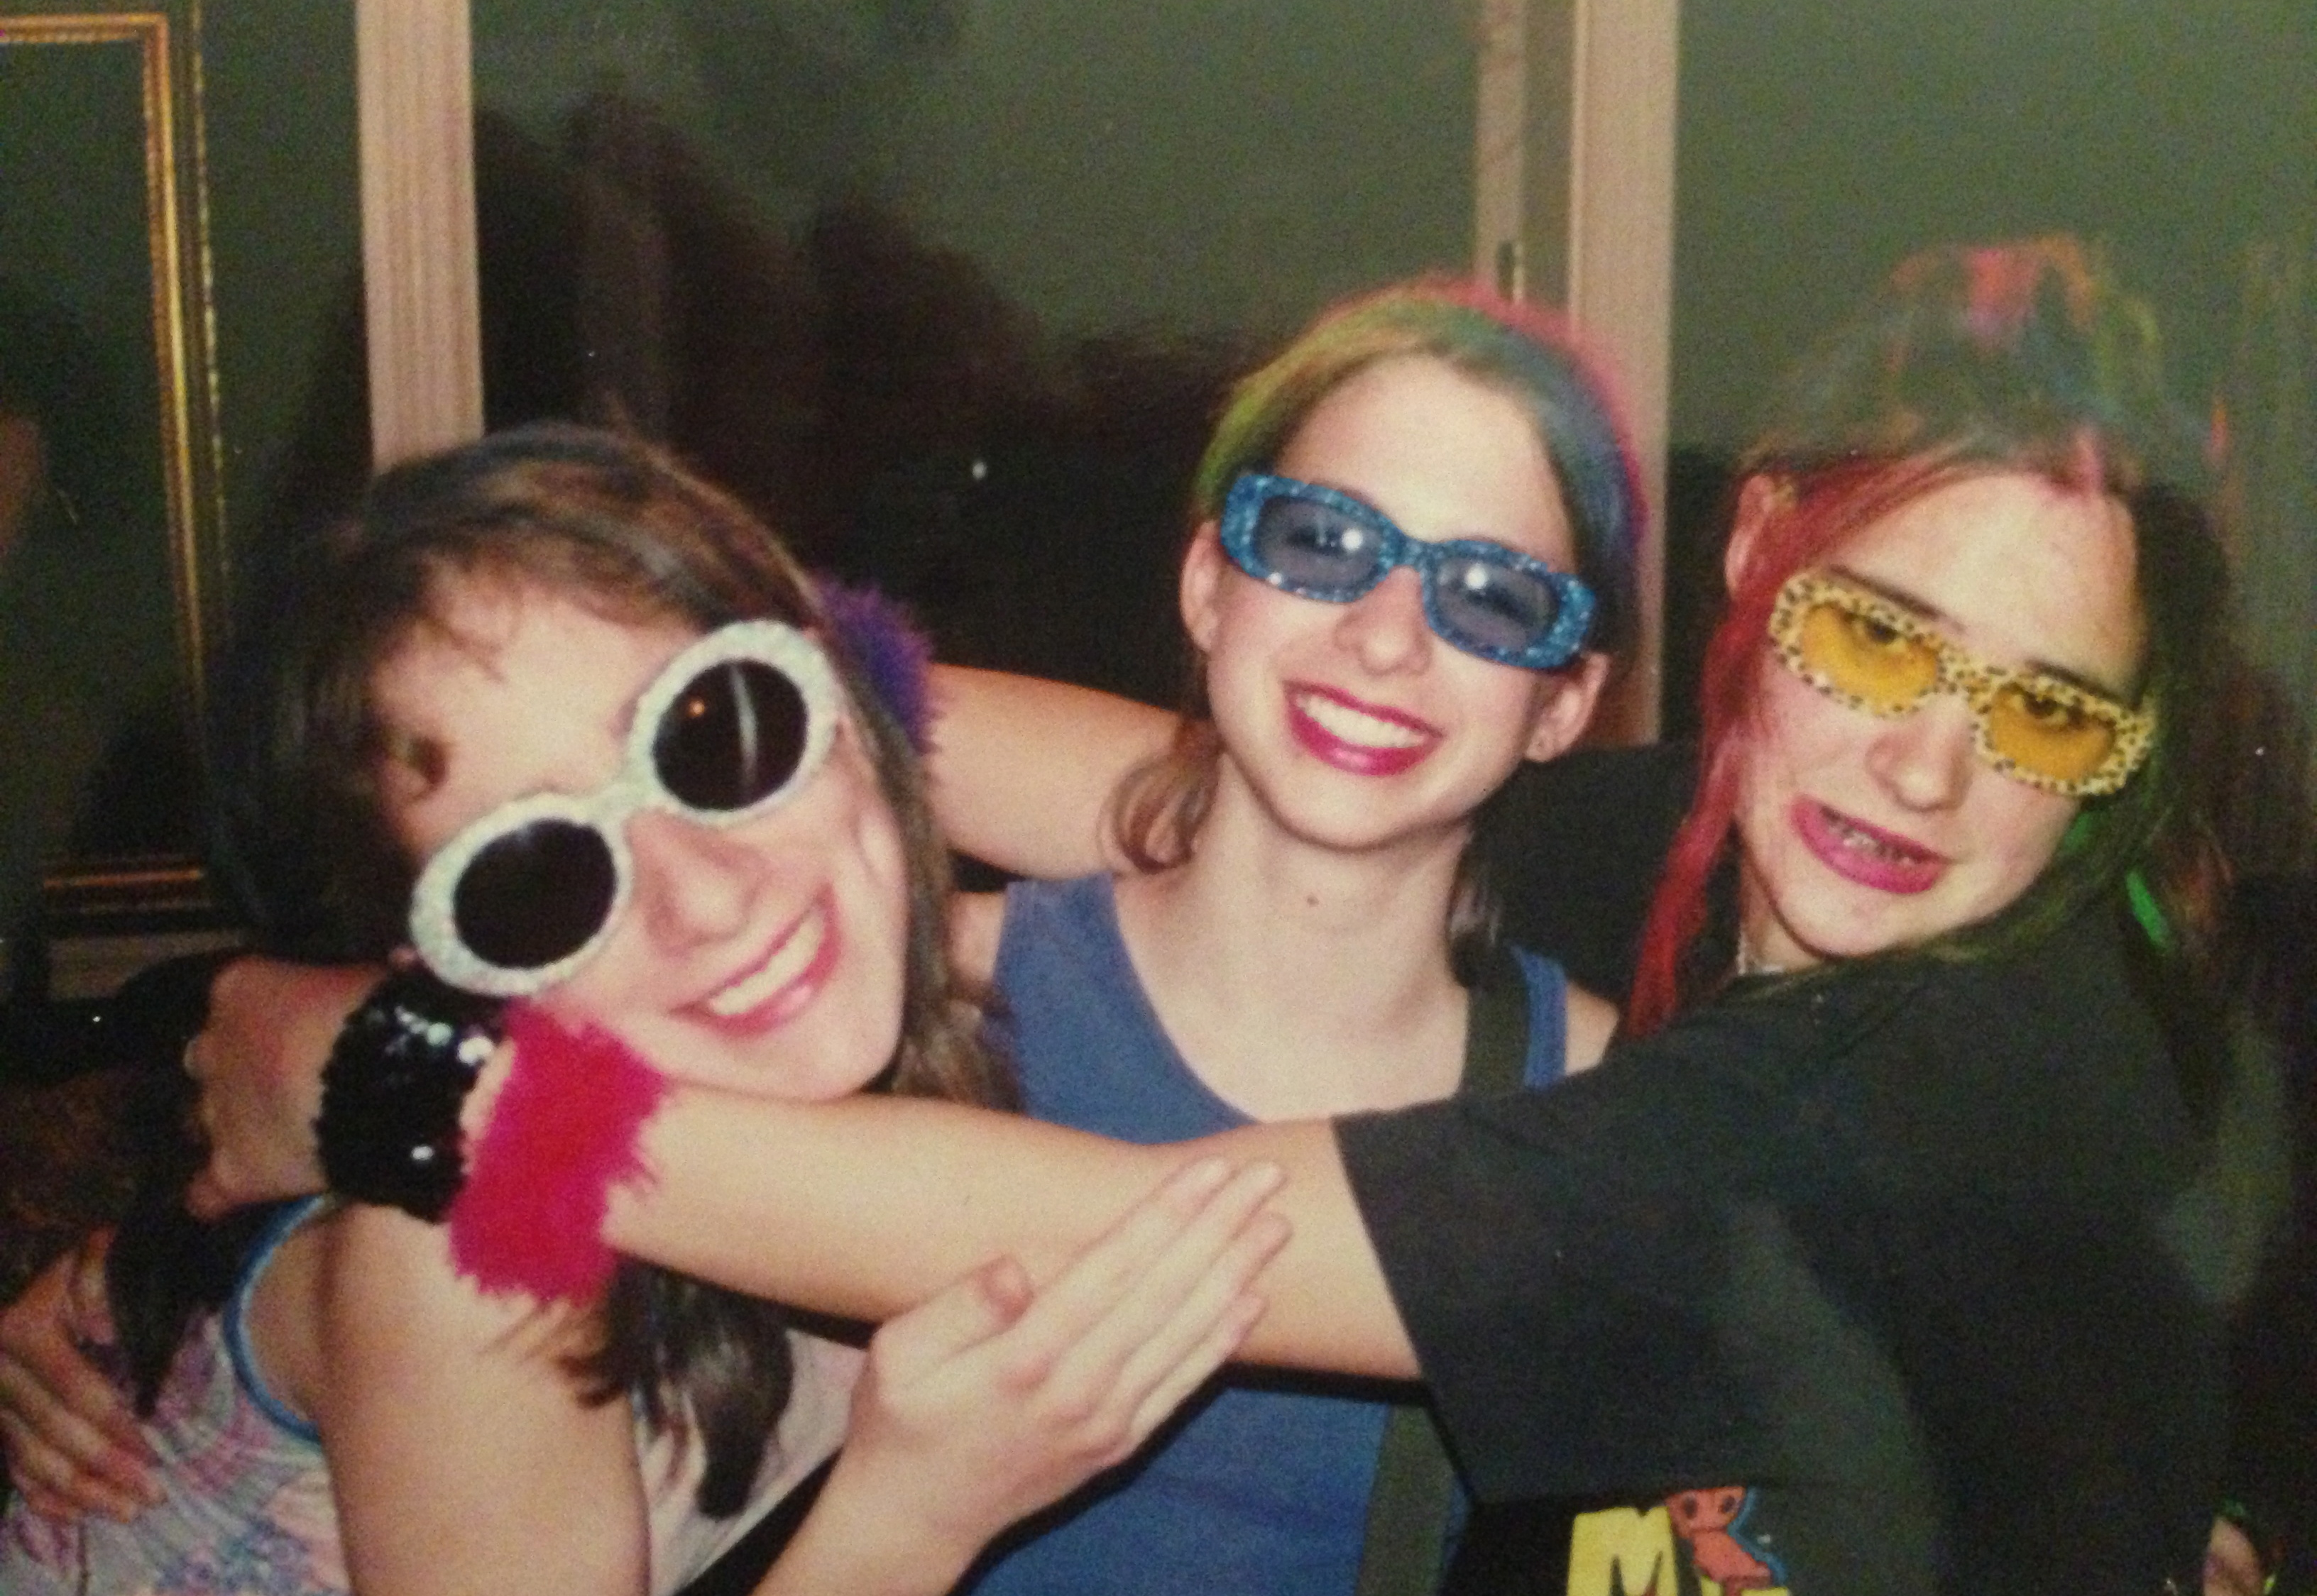 me, iliza, carrie pre-hanson concert, the year 2000